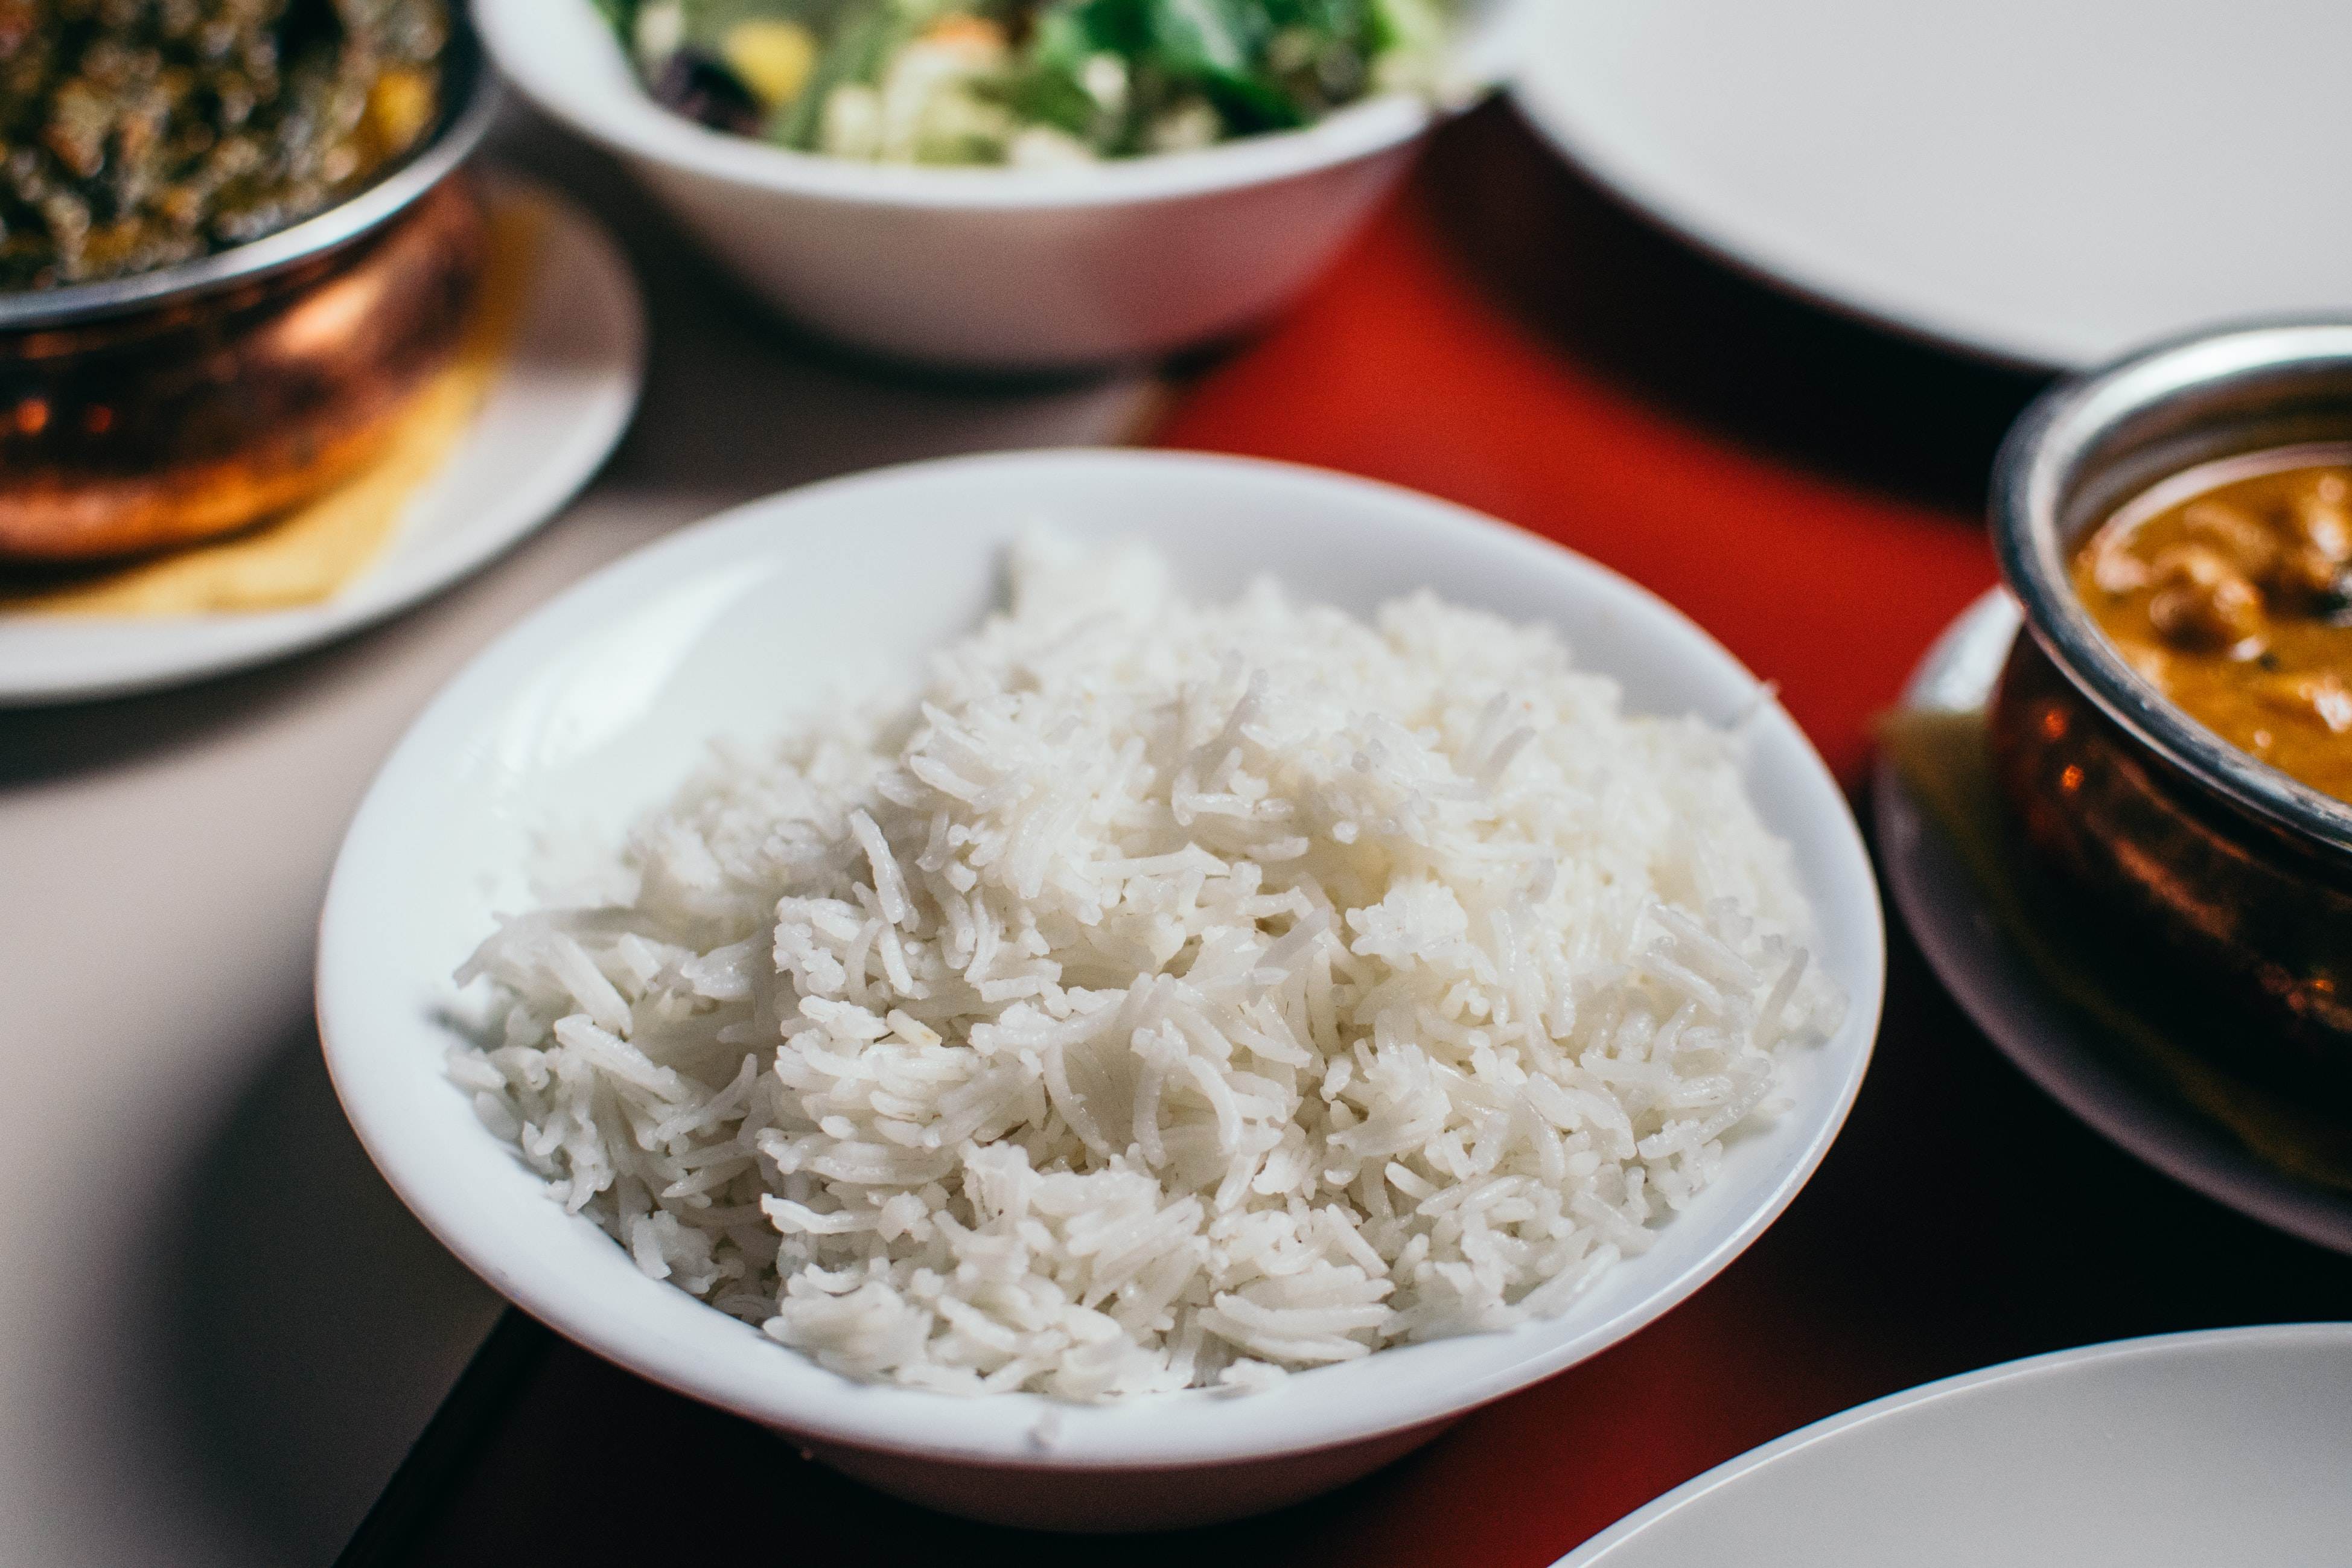 """The humble rice has seemingly lost to the muscular """"wholewheat"""" brigade. Photo by Pille-Riin Priske/ Unsplash"""